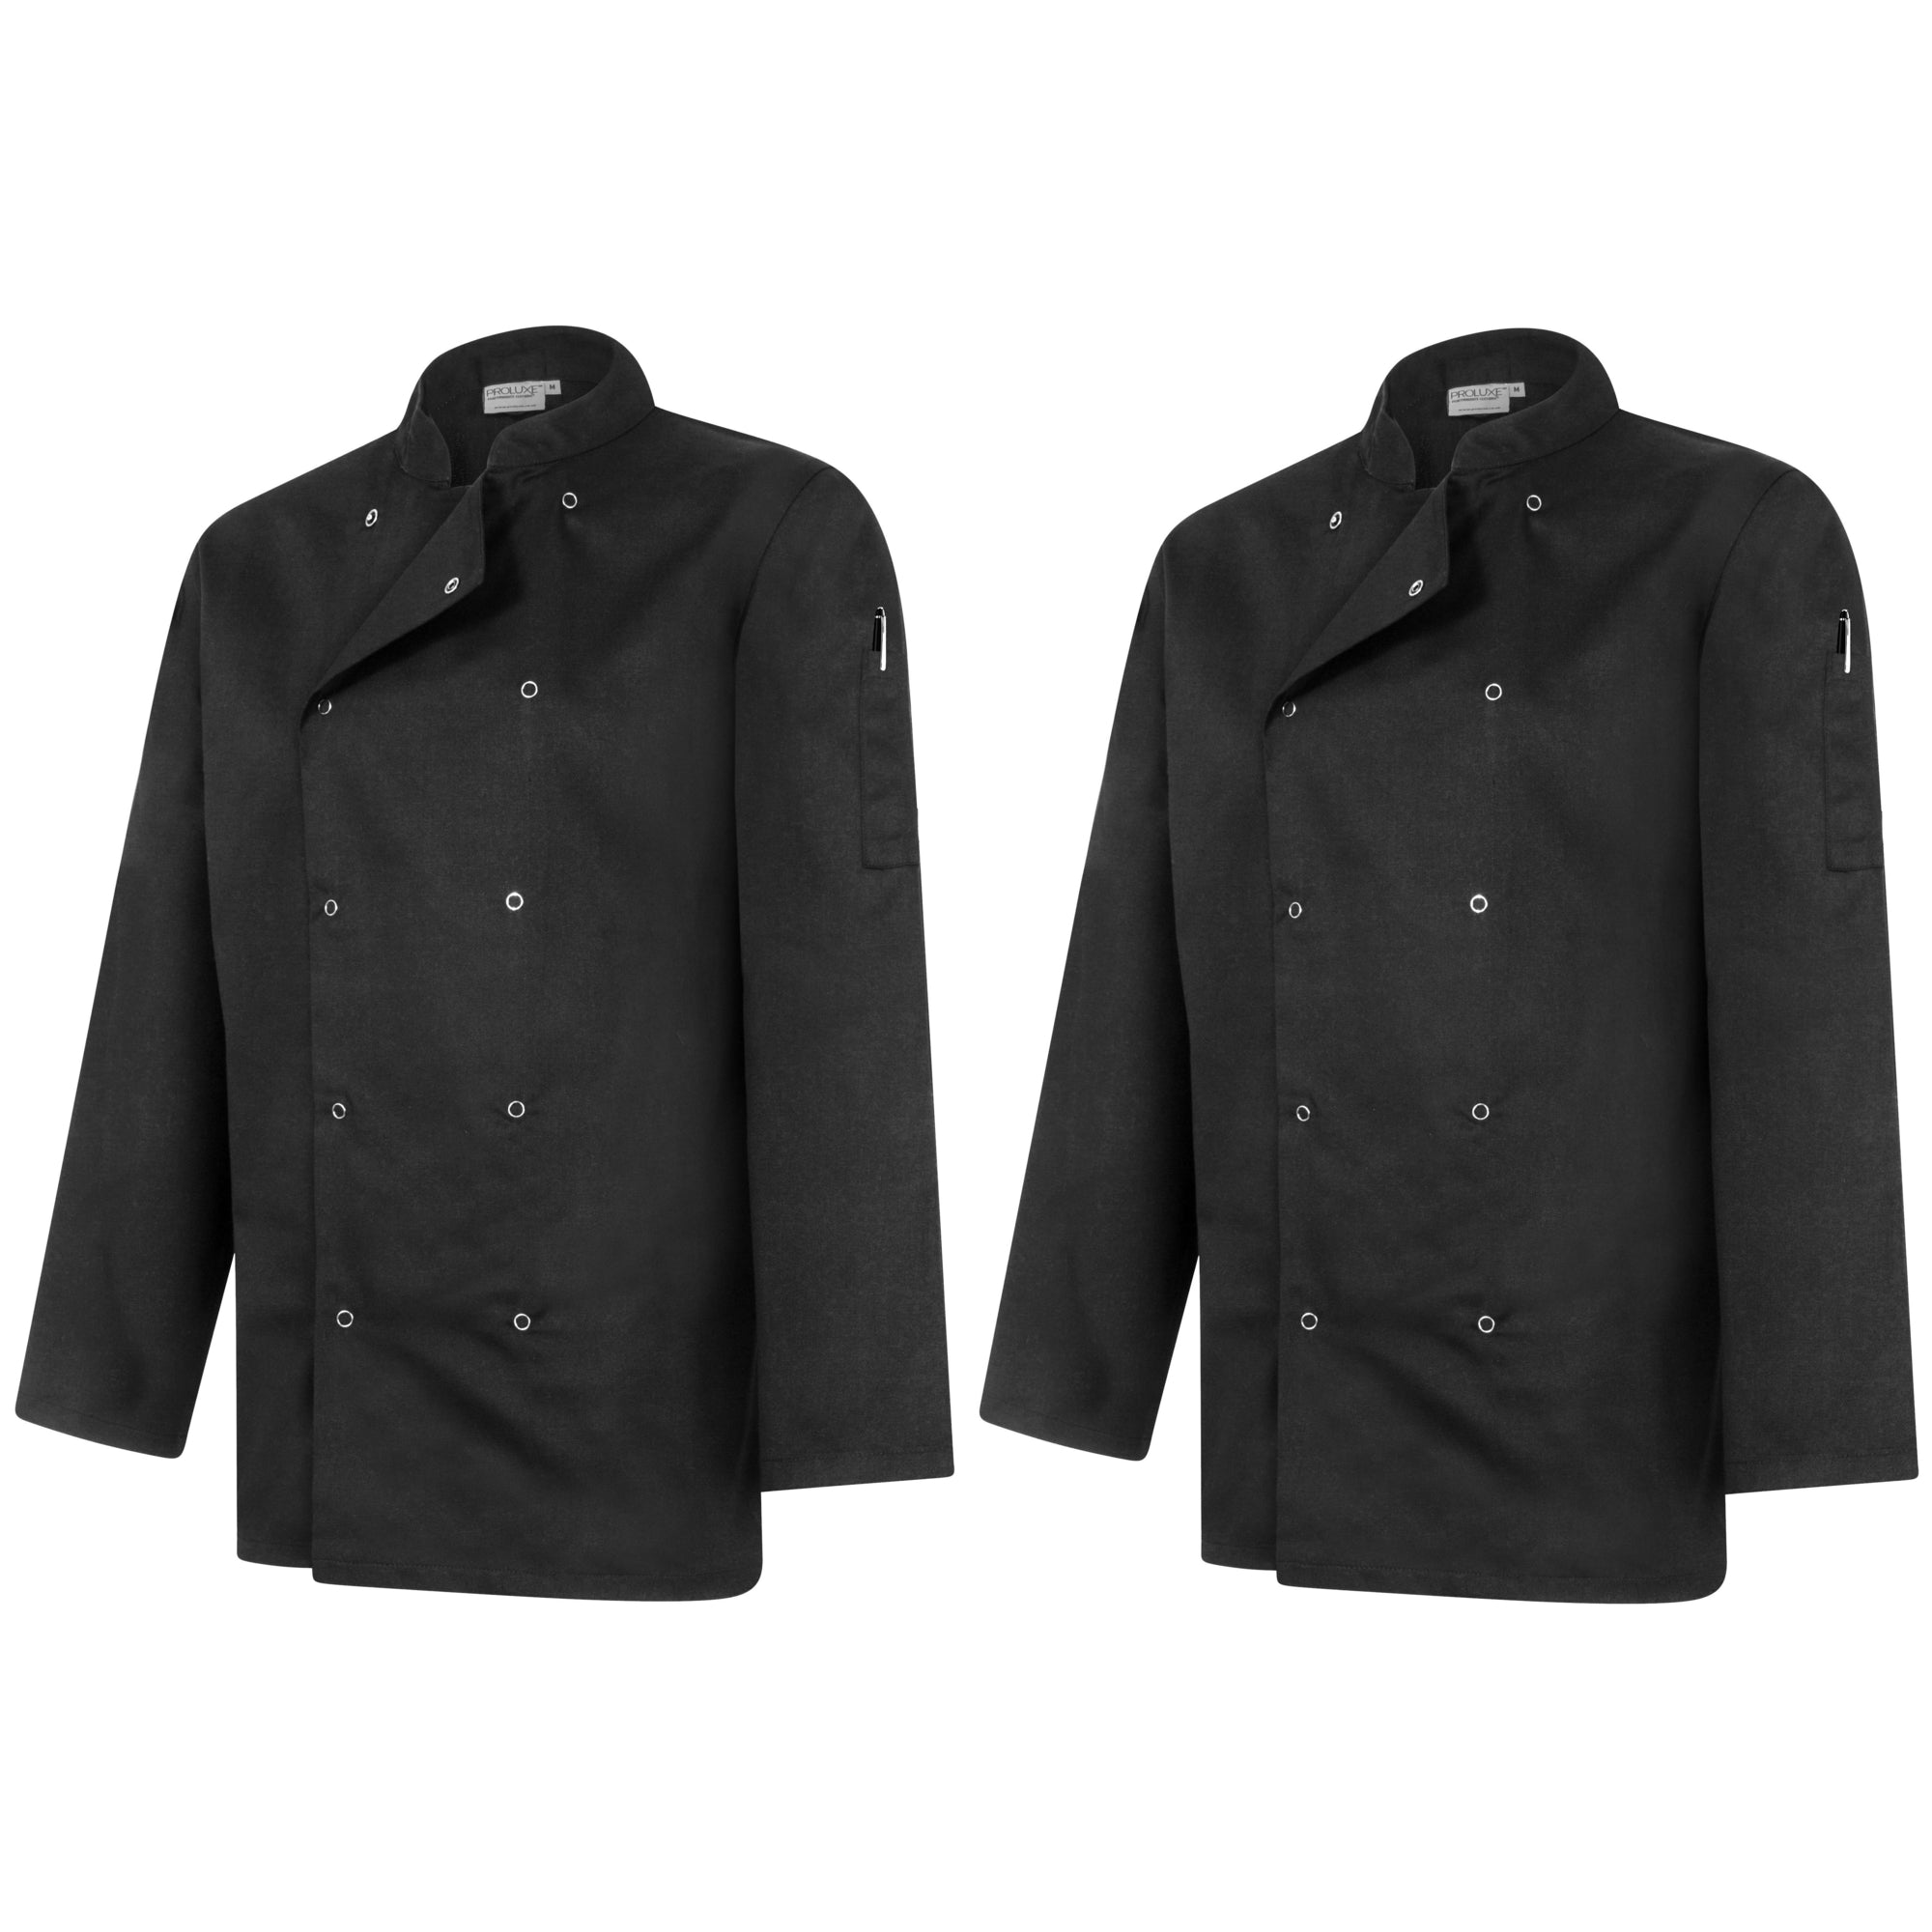 Twin Pack - Professional Chefs Jacket - Long Sleeve - Black